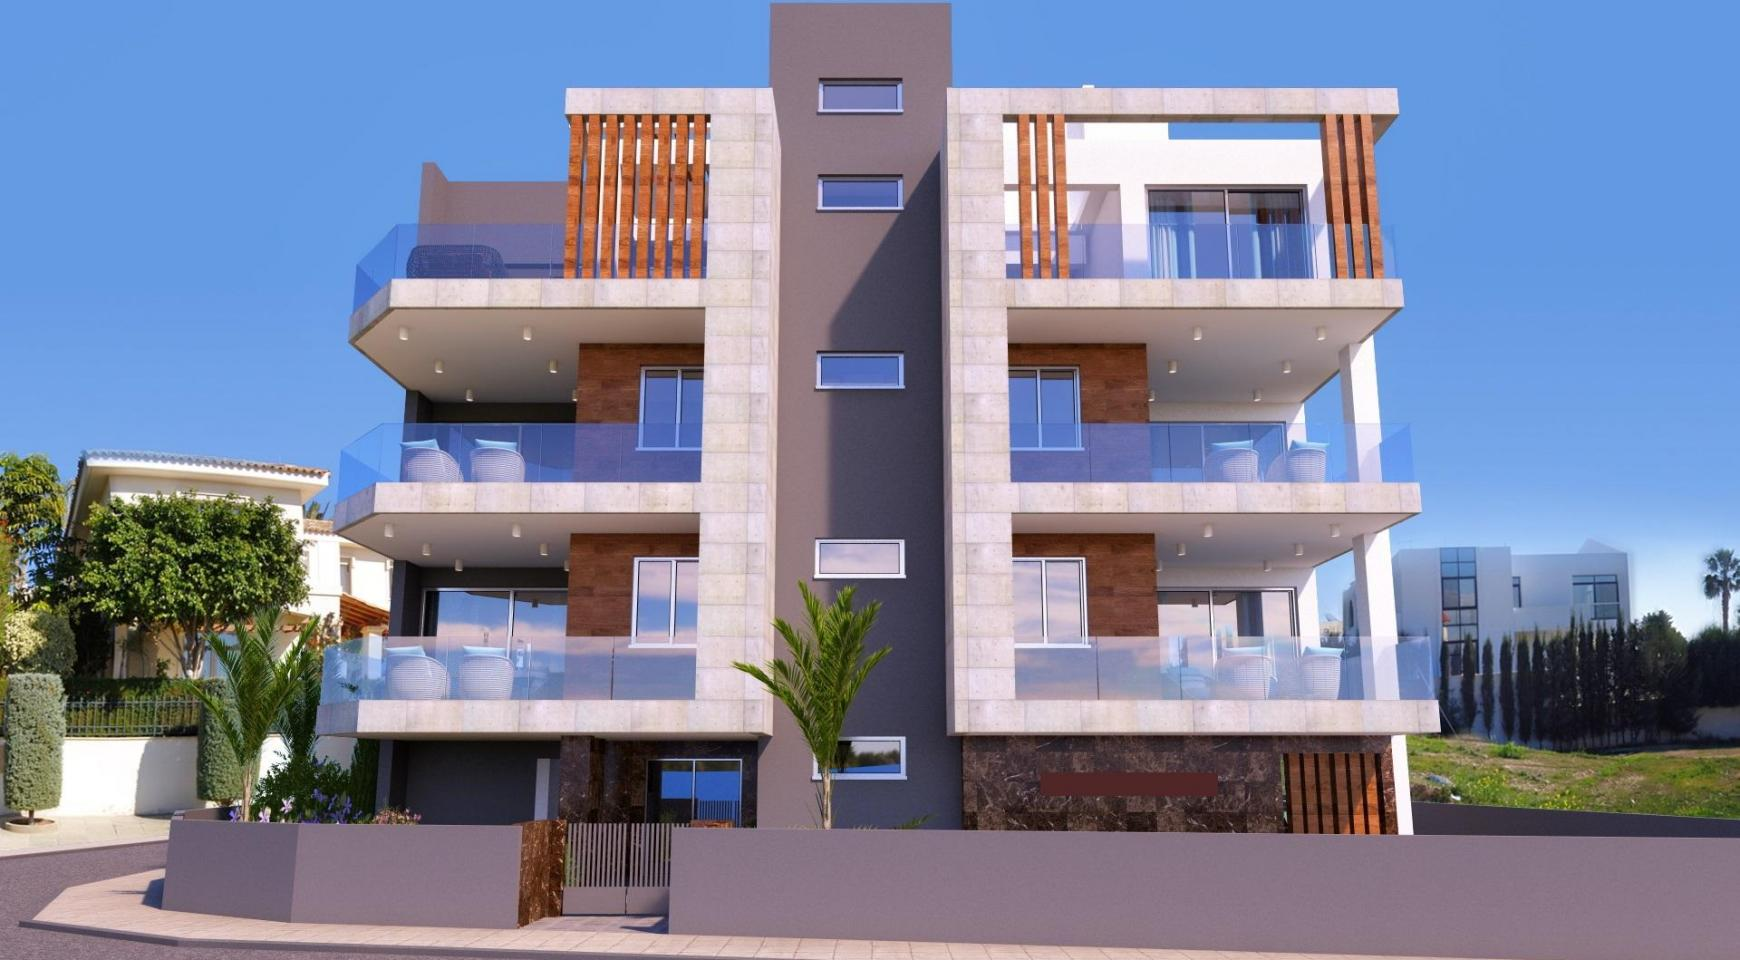 3 Bedroom Apartment in a Contemporary Building in Potamos Germasogeia - 2